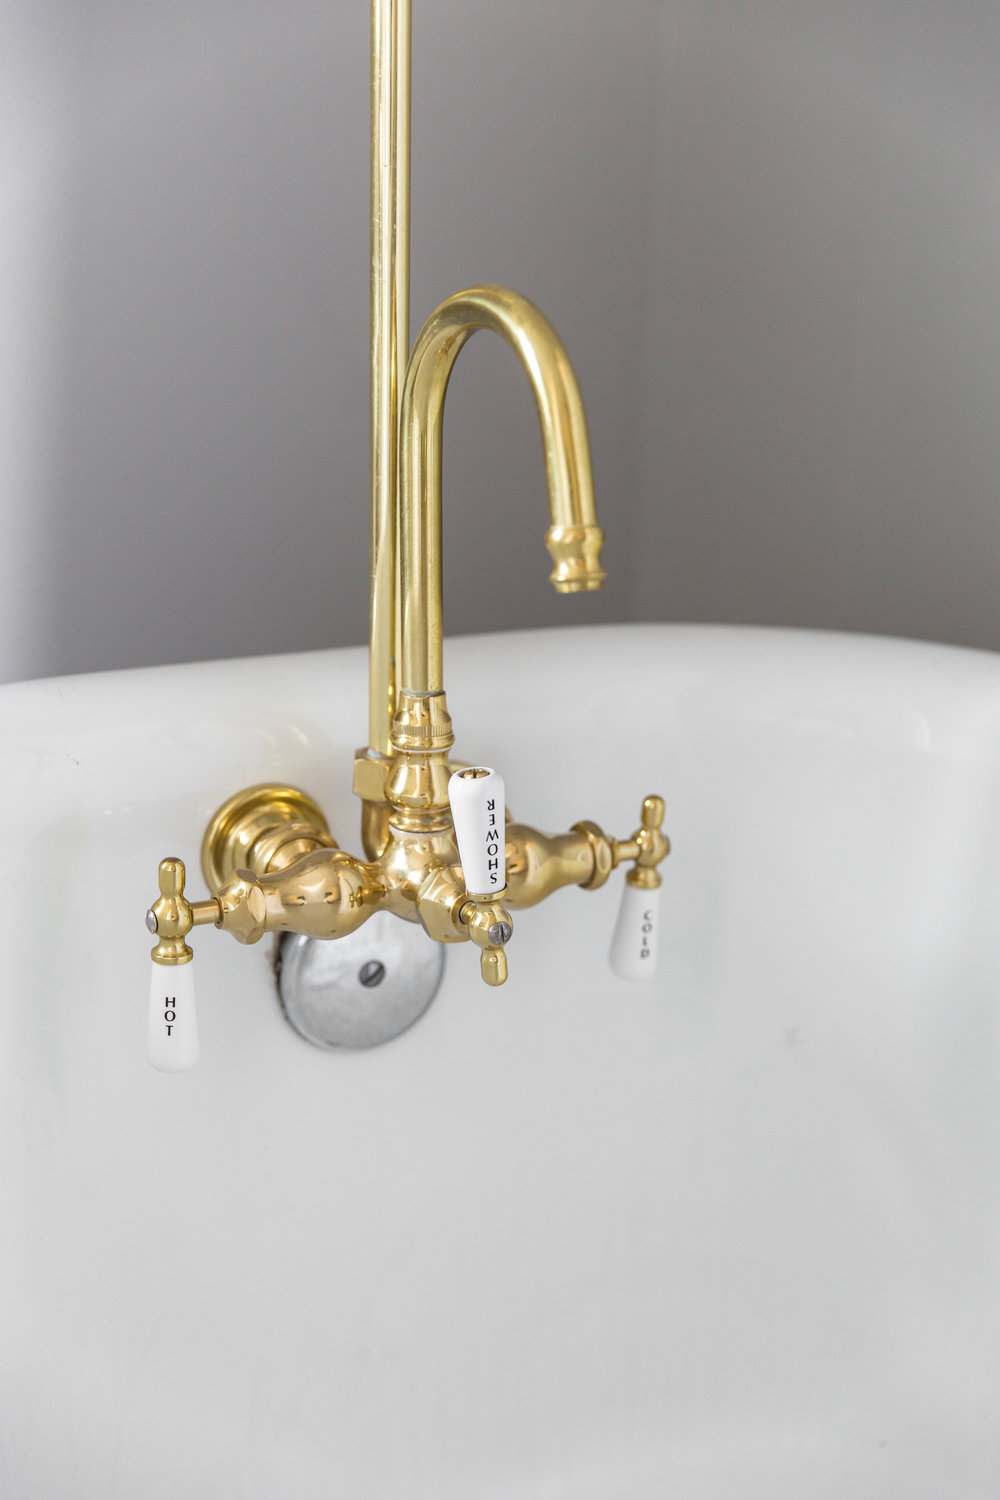 The Lee Wendell Suite - brass faucet and handles in tub